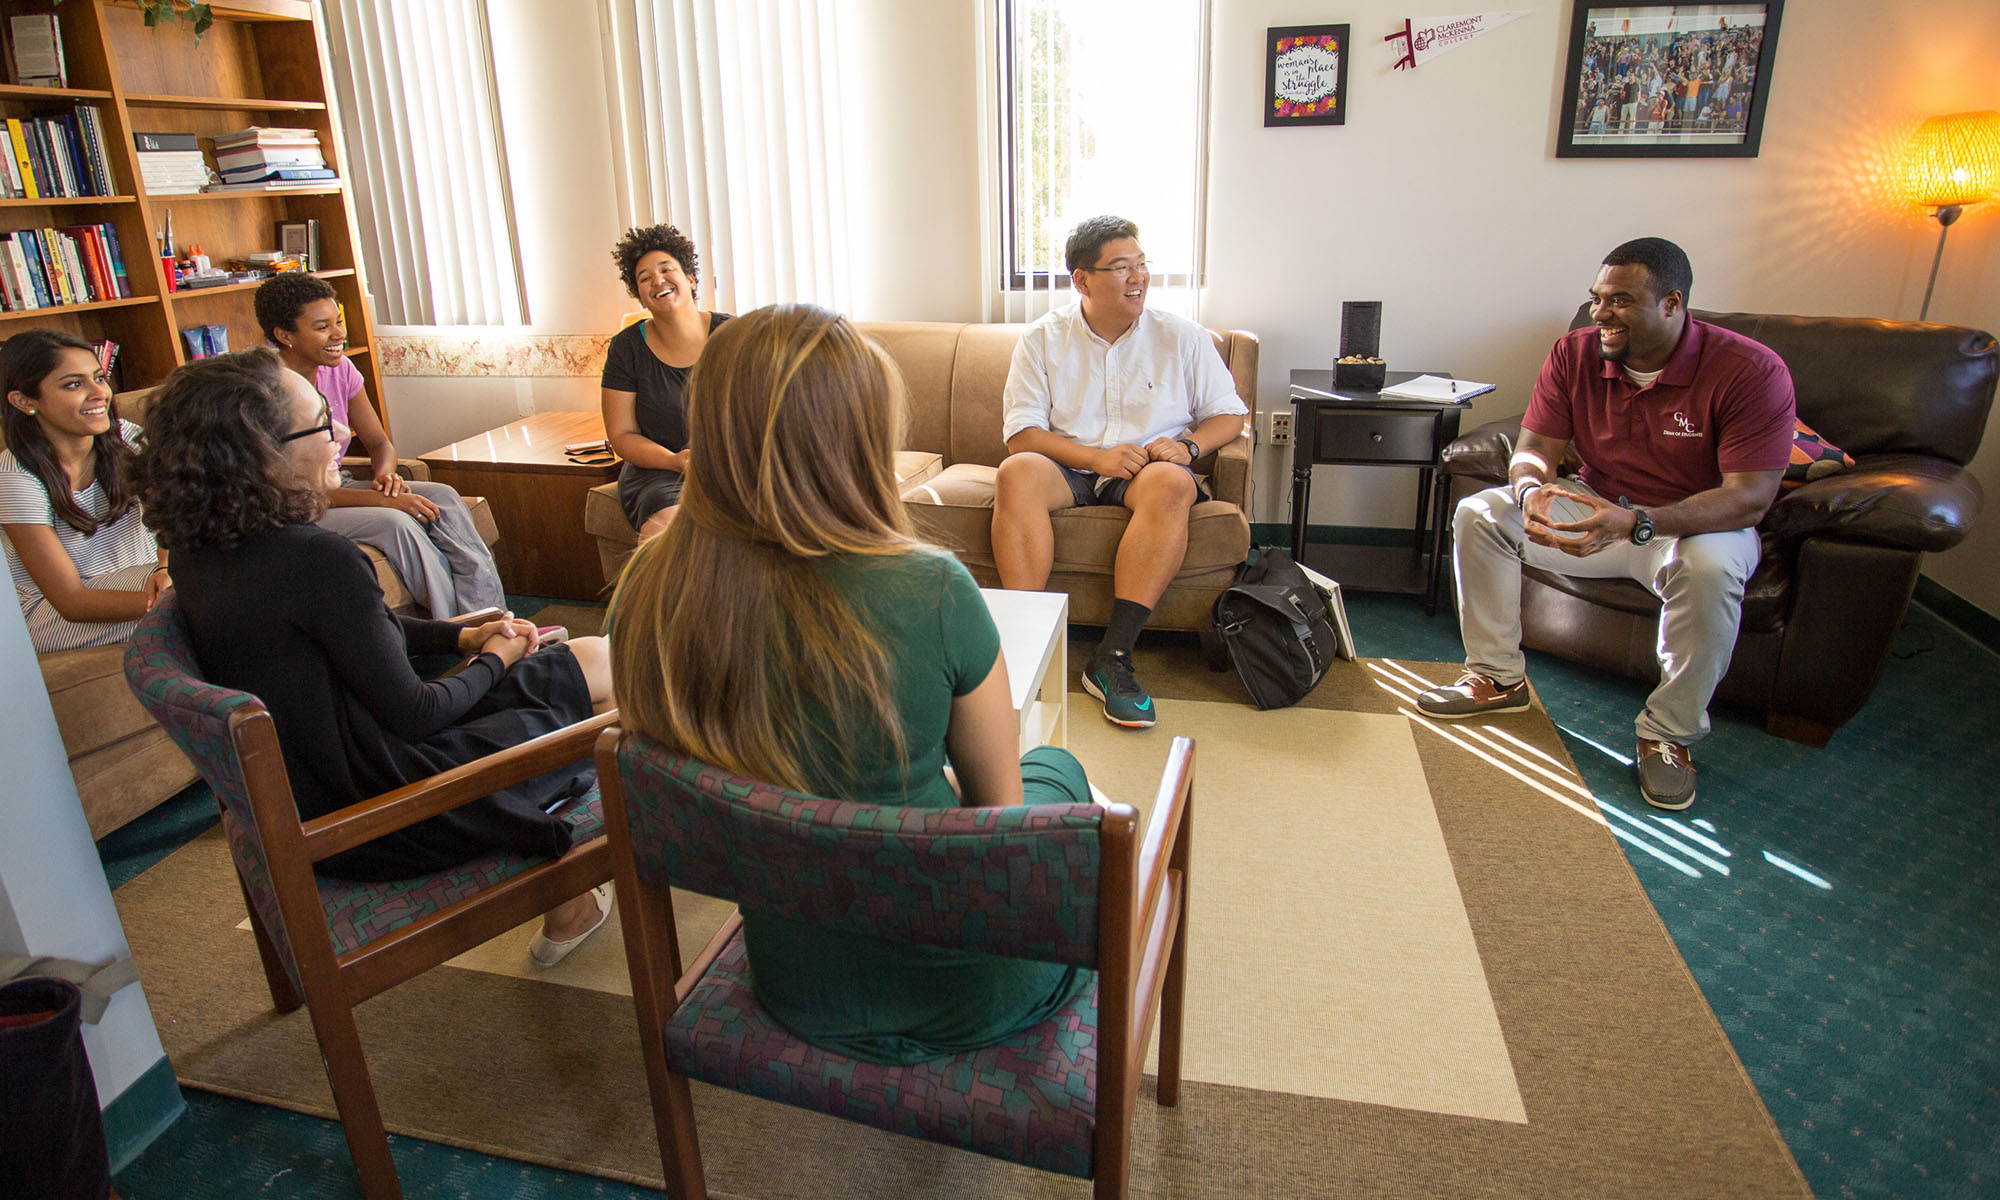 Vince Greer, Assistant Dean of Students for Diversity and Inclusion, meeting with CMC students at the CARE Center. Image credit: CMC